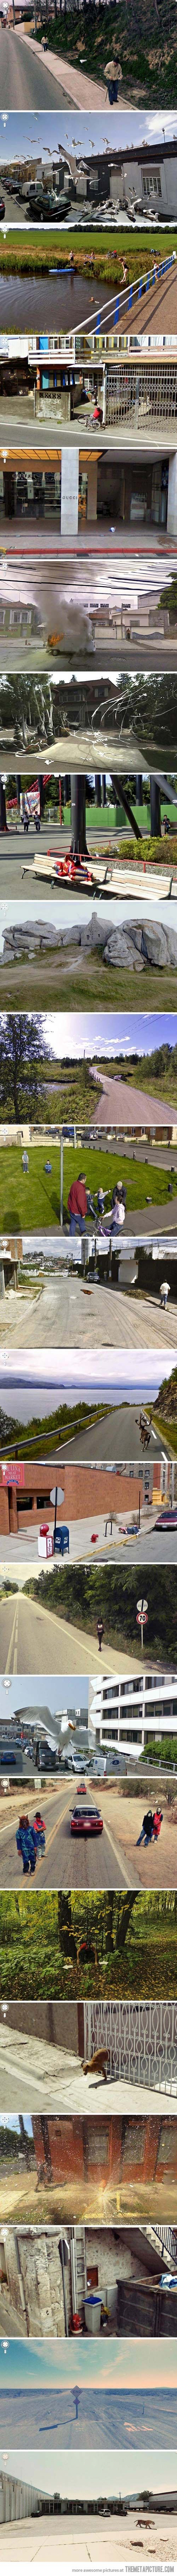 Meanwhile on Google Maps Street View... I can't believe these are real!